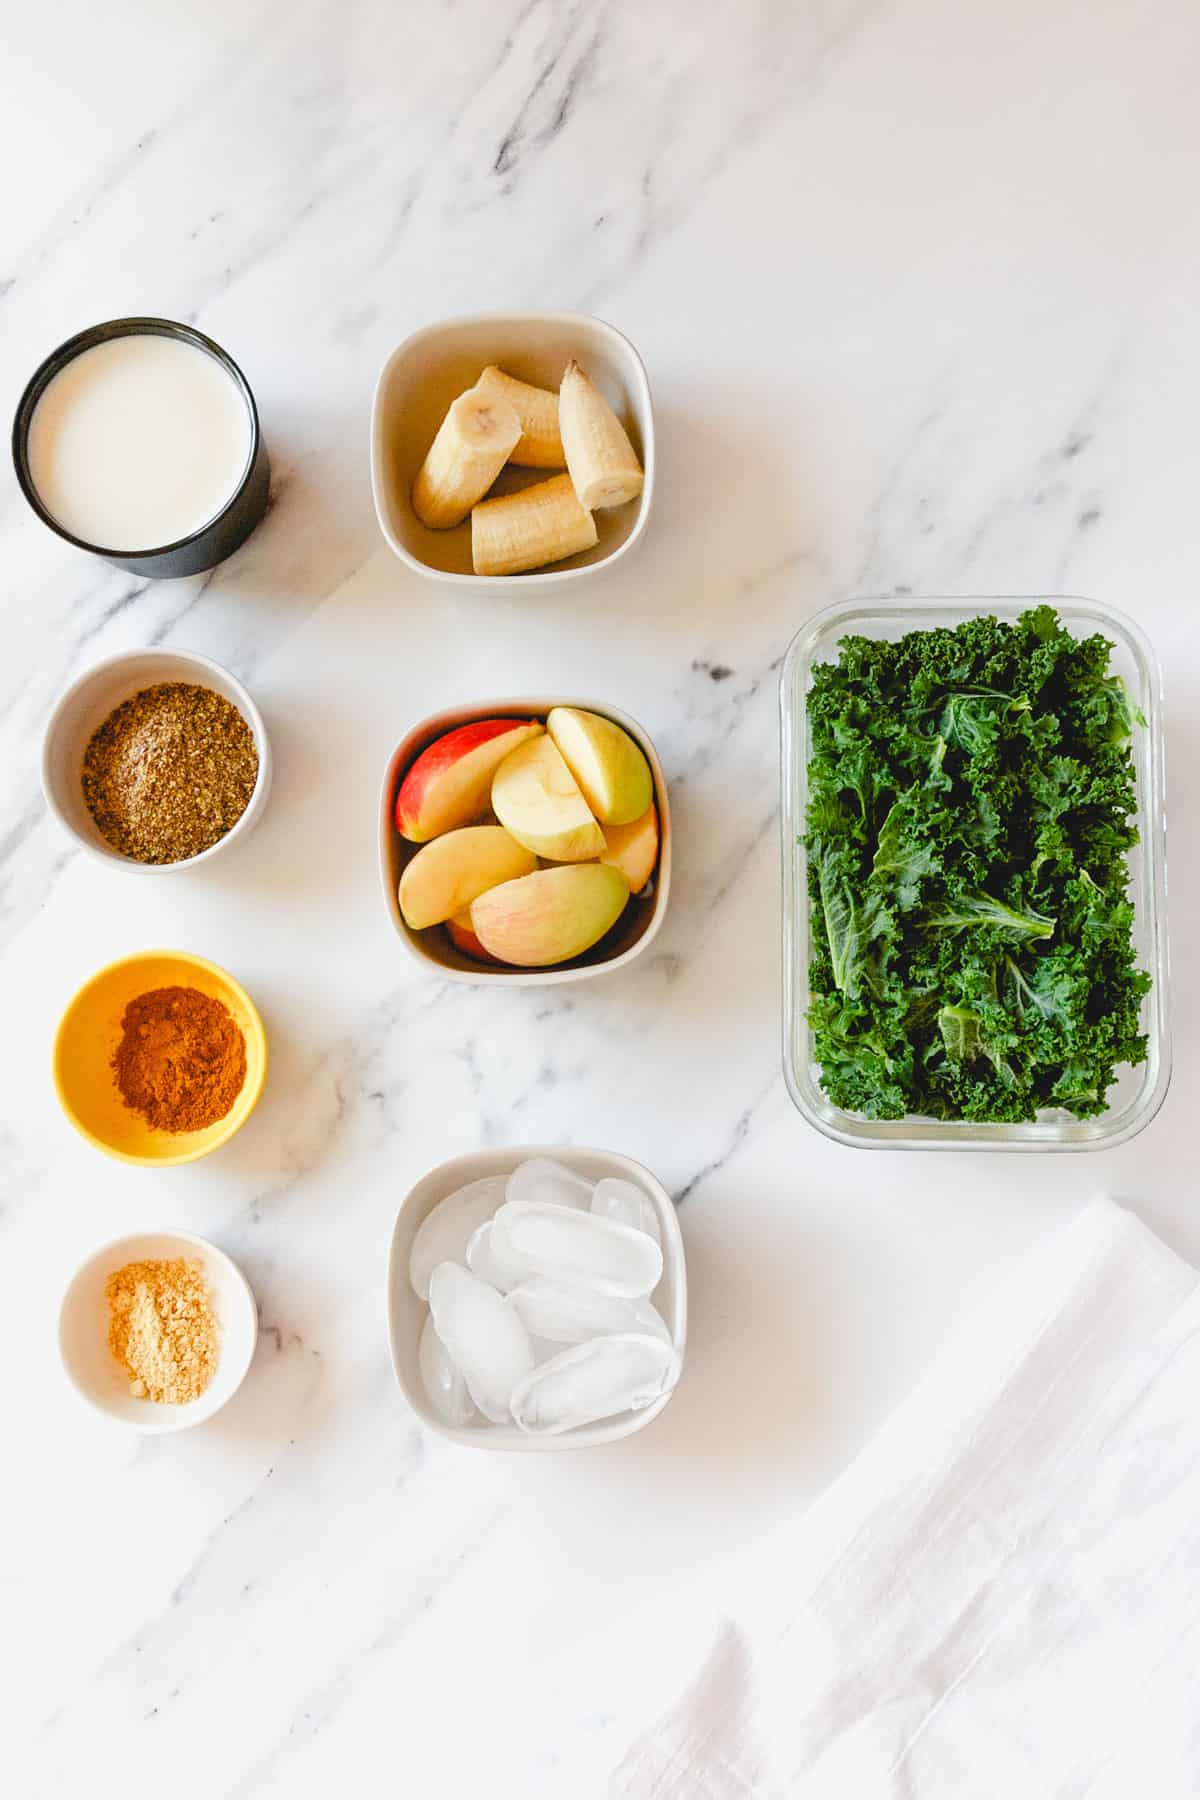 Apples, bananas, kale, flax, ginger, turmeric, ice, and non-dairy milk arranged on a marble countertop